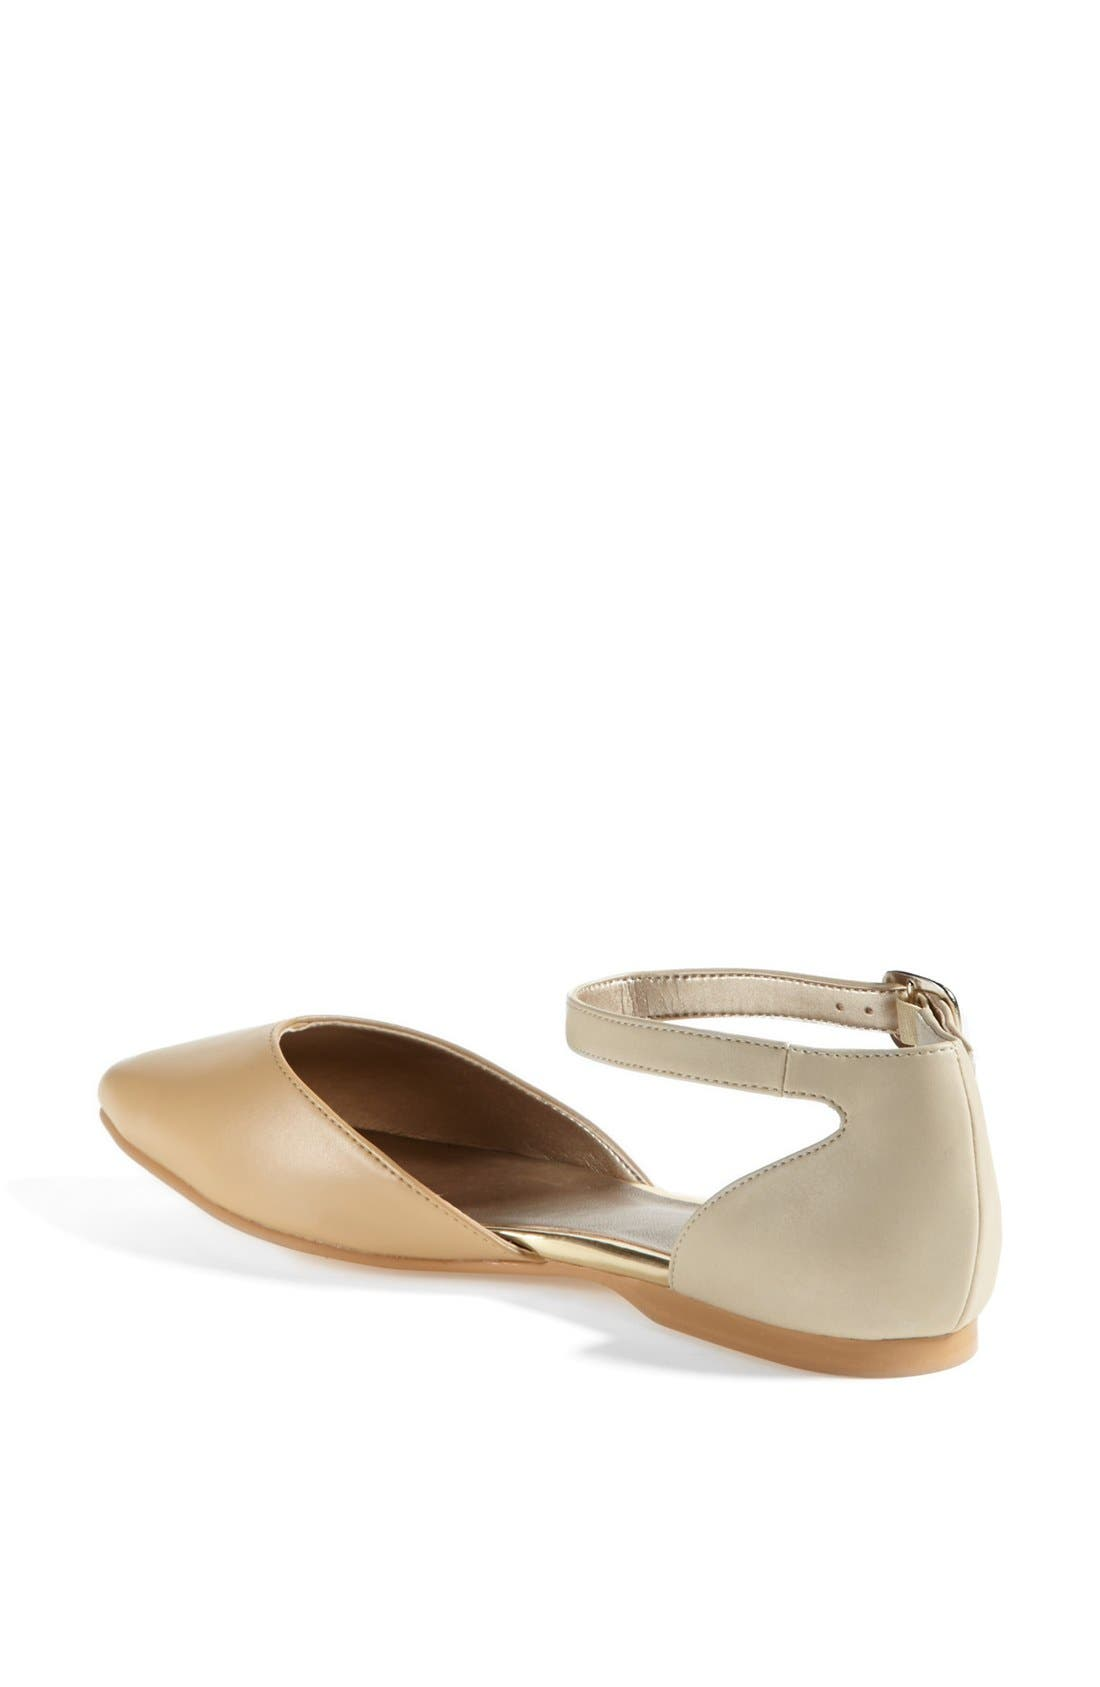 Alternate Image 2  - BP. 'Gillie' Ankle Strap Flat